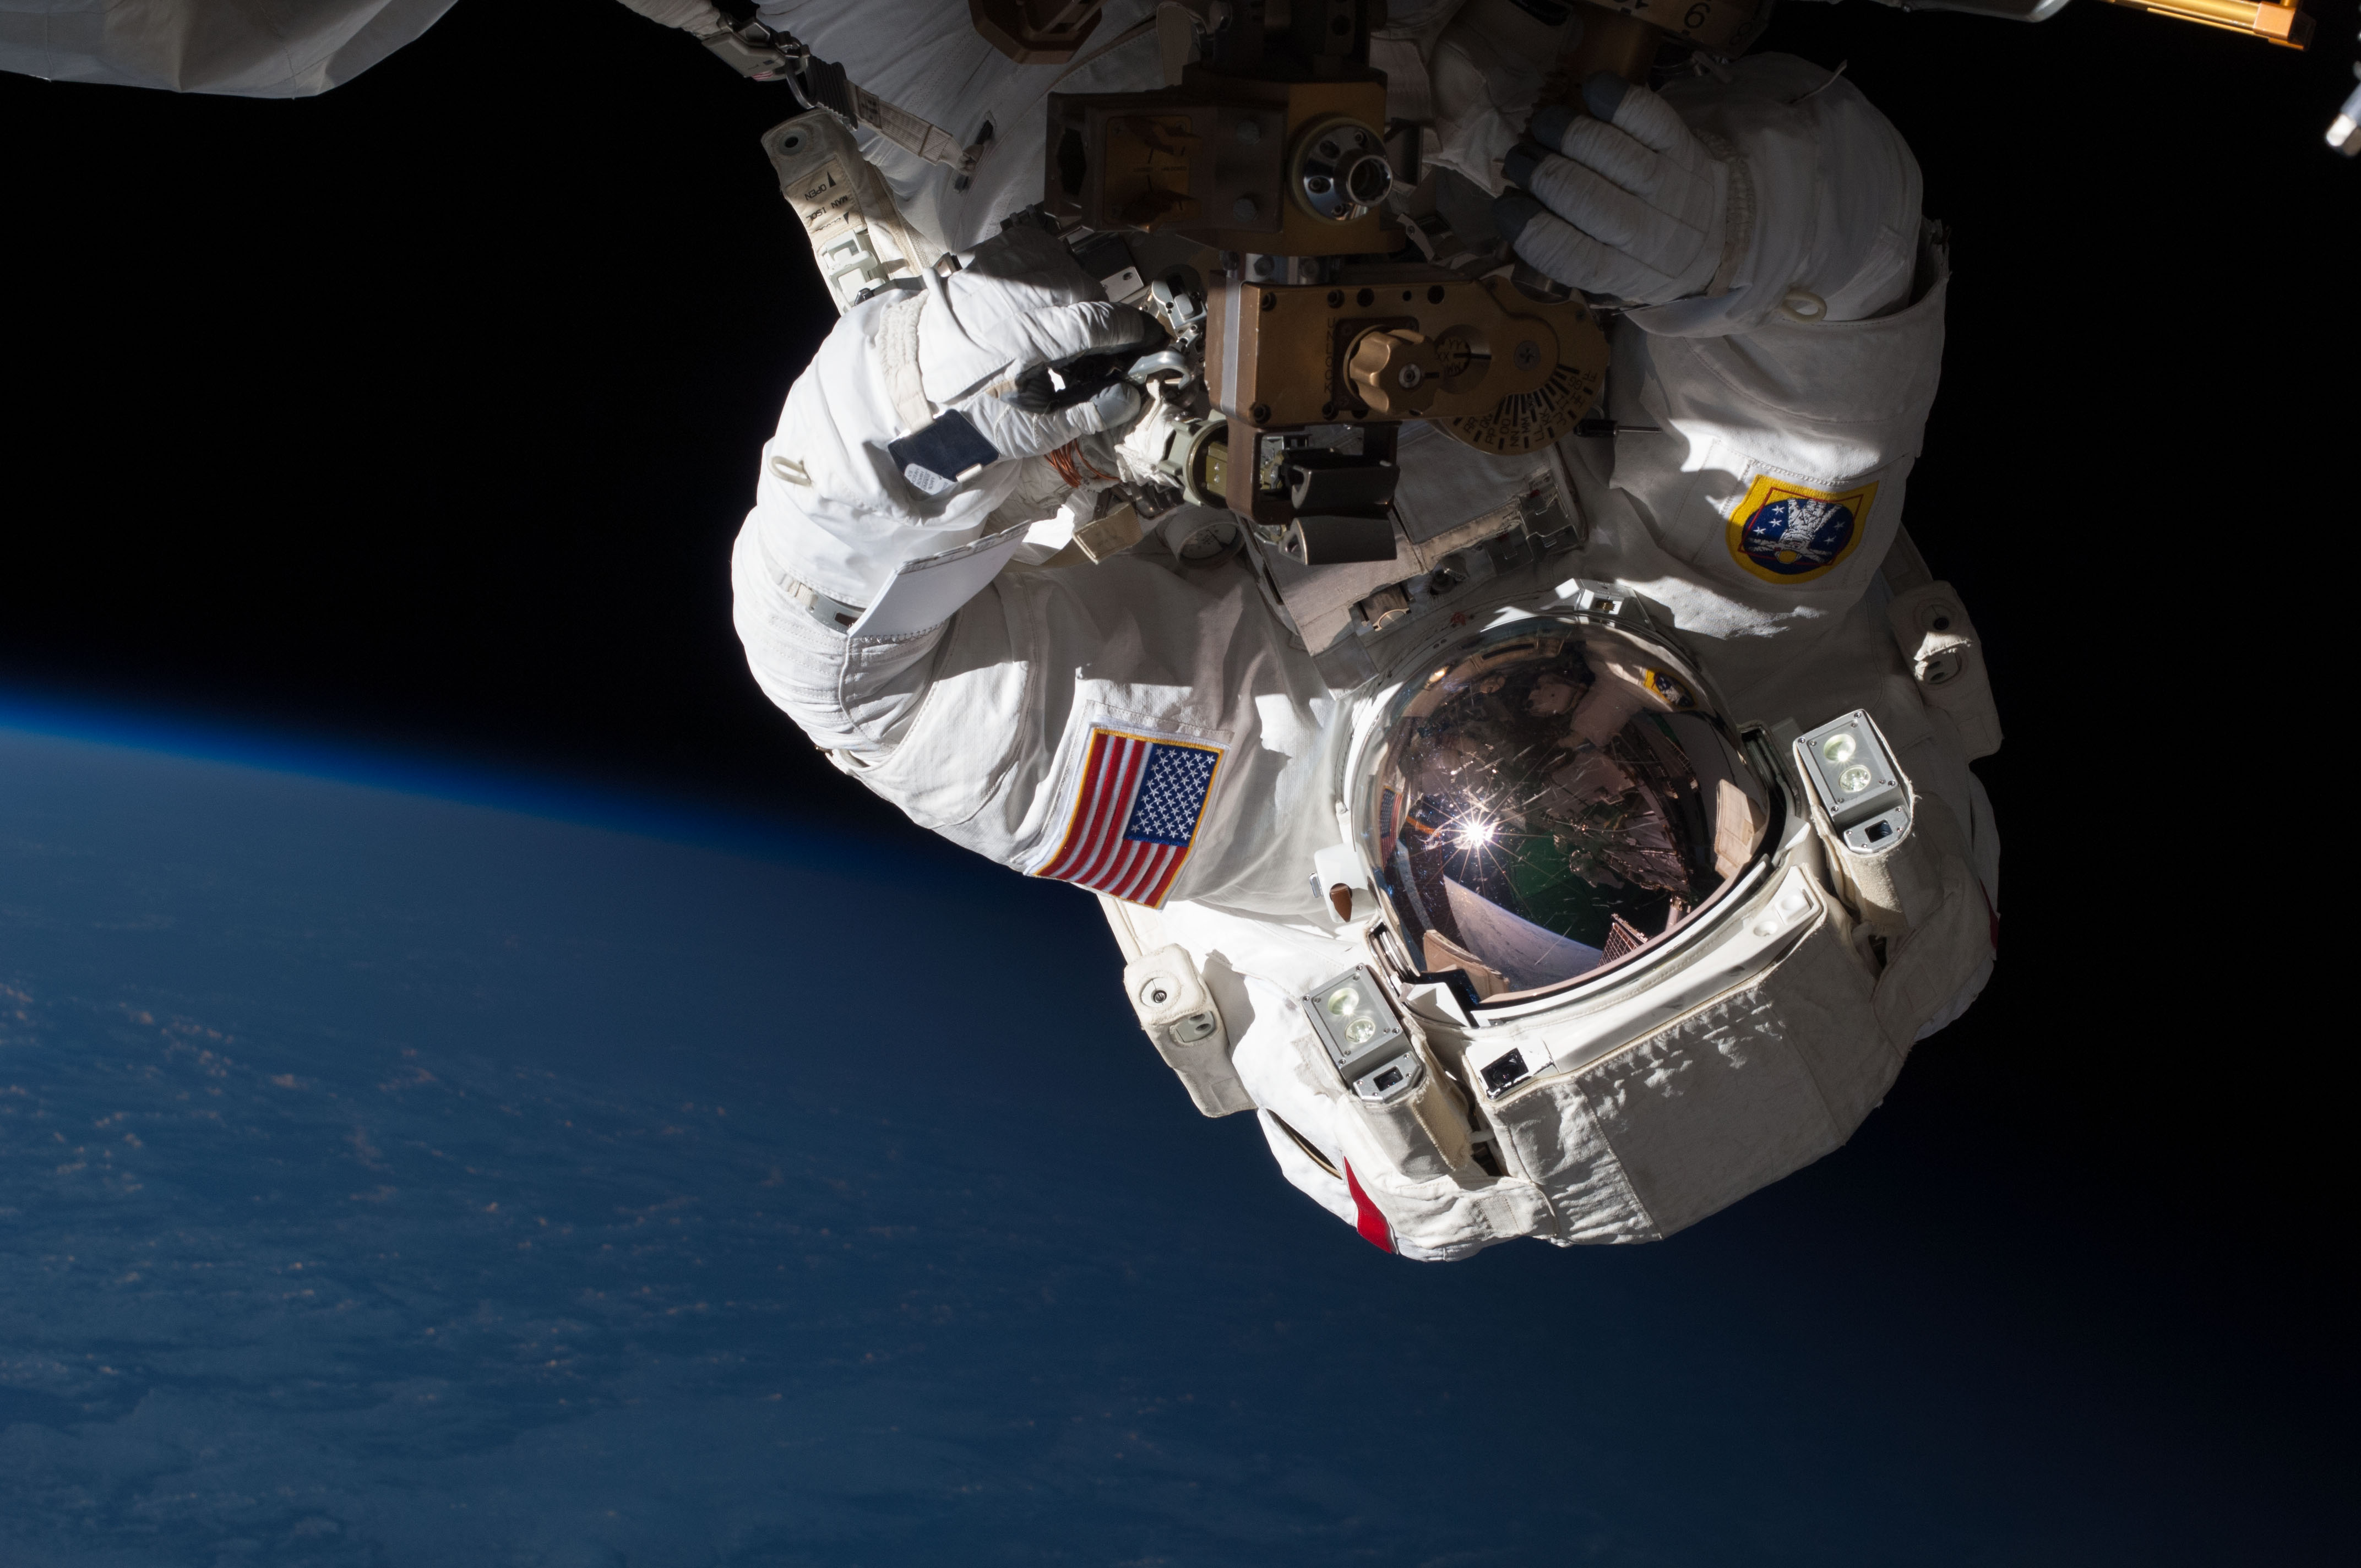 astronaut working on space station - photo #33